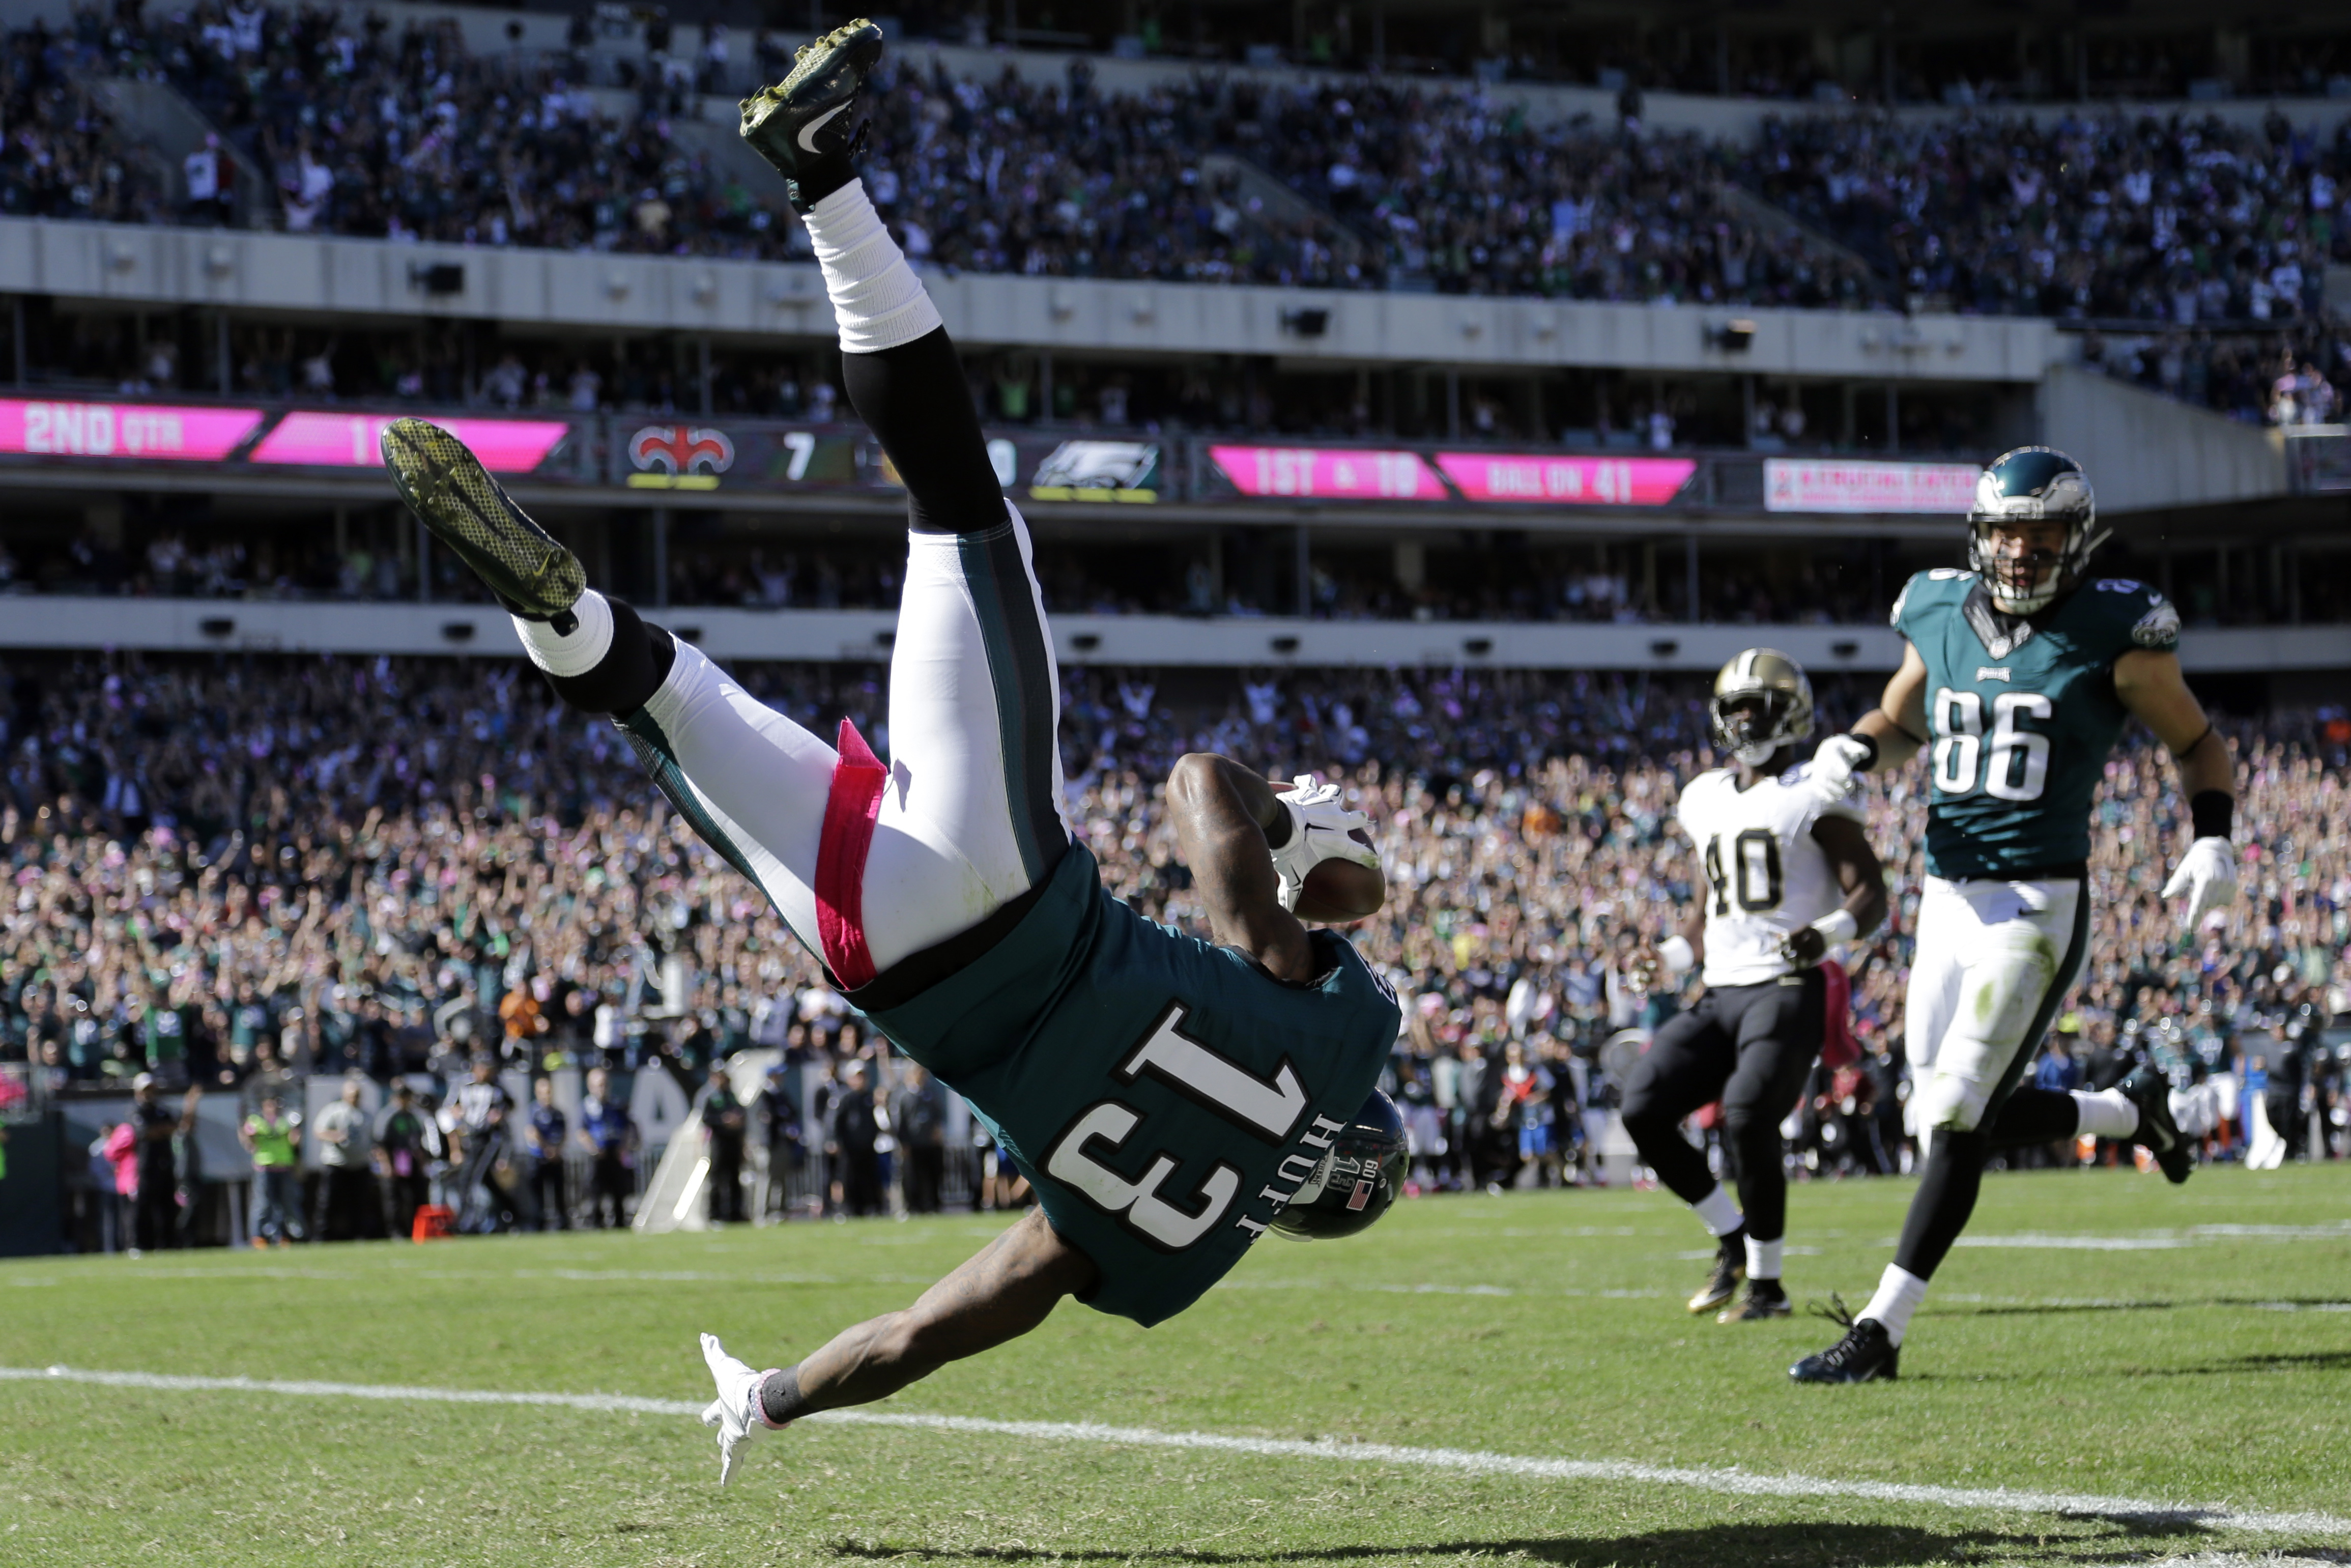 Philadelphia Eagles' Josh Huff flips into the end zone for a touchdown during the first half of an NFL football game against the New Orleans Saints, Sunday, Oct. 11, 2015, in Philadelphia. (AP Photo/Matt Rourke)